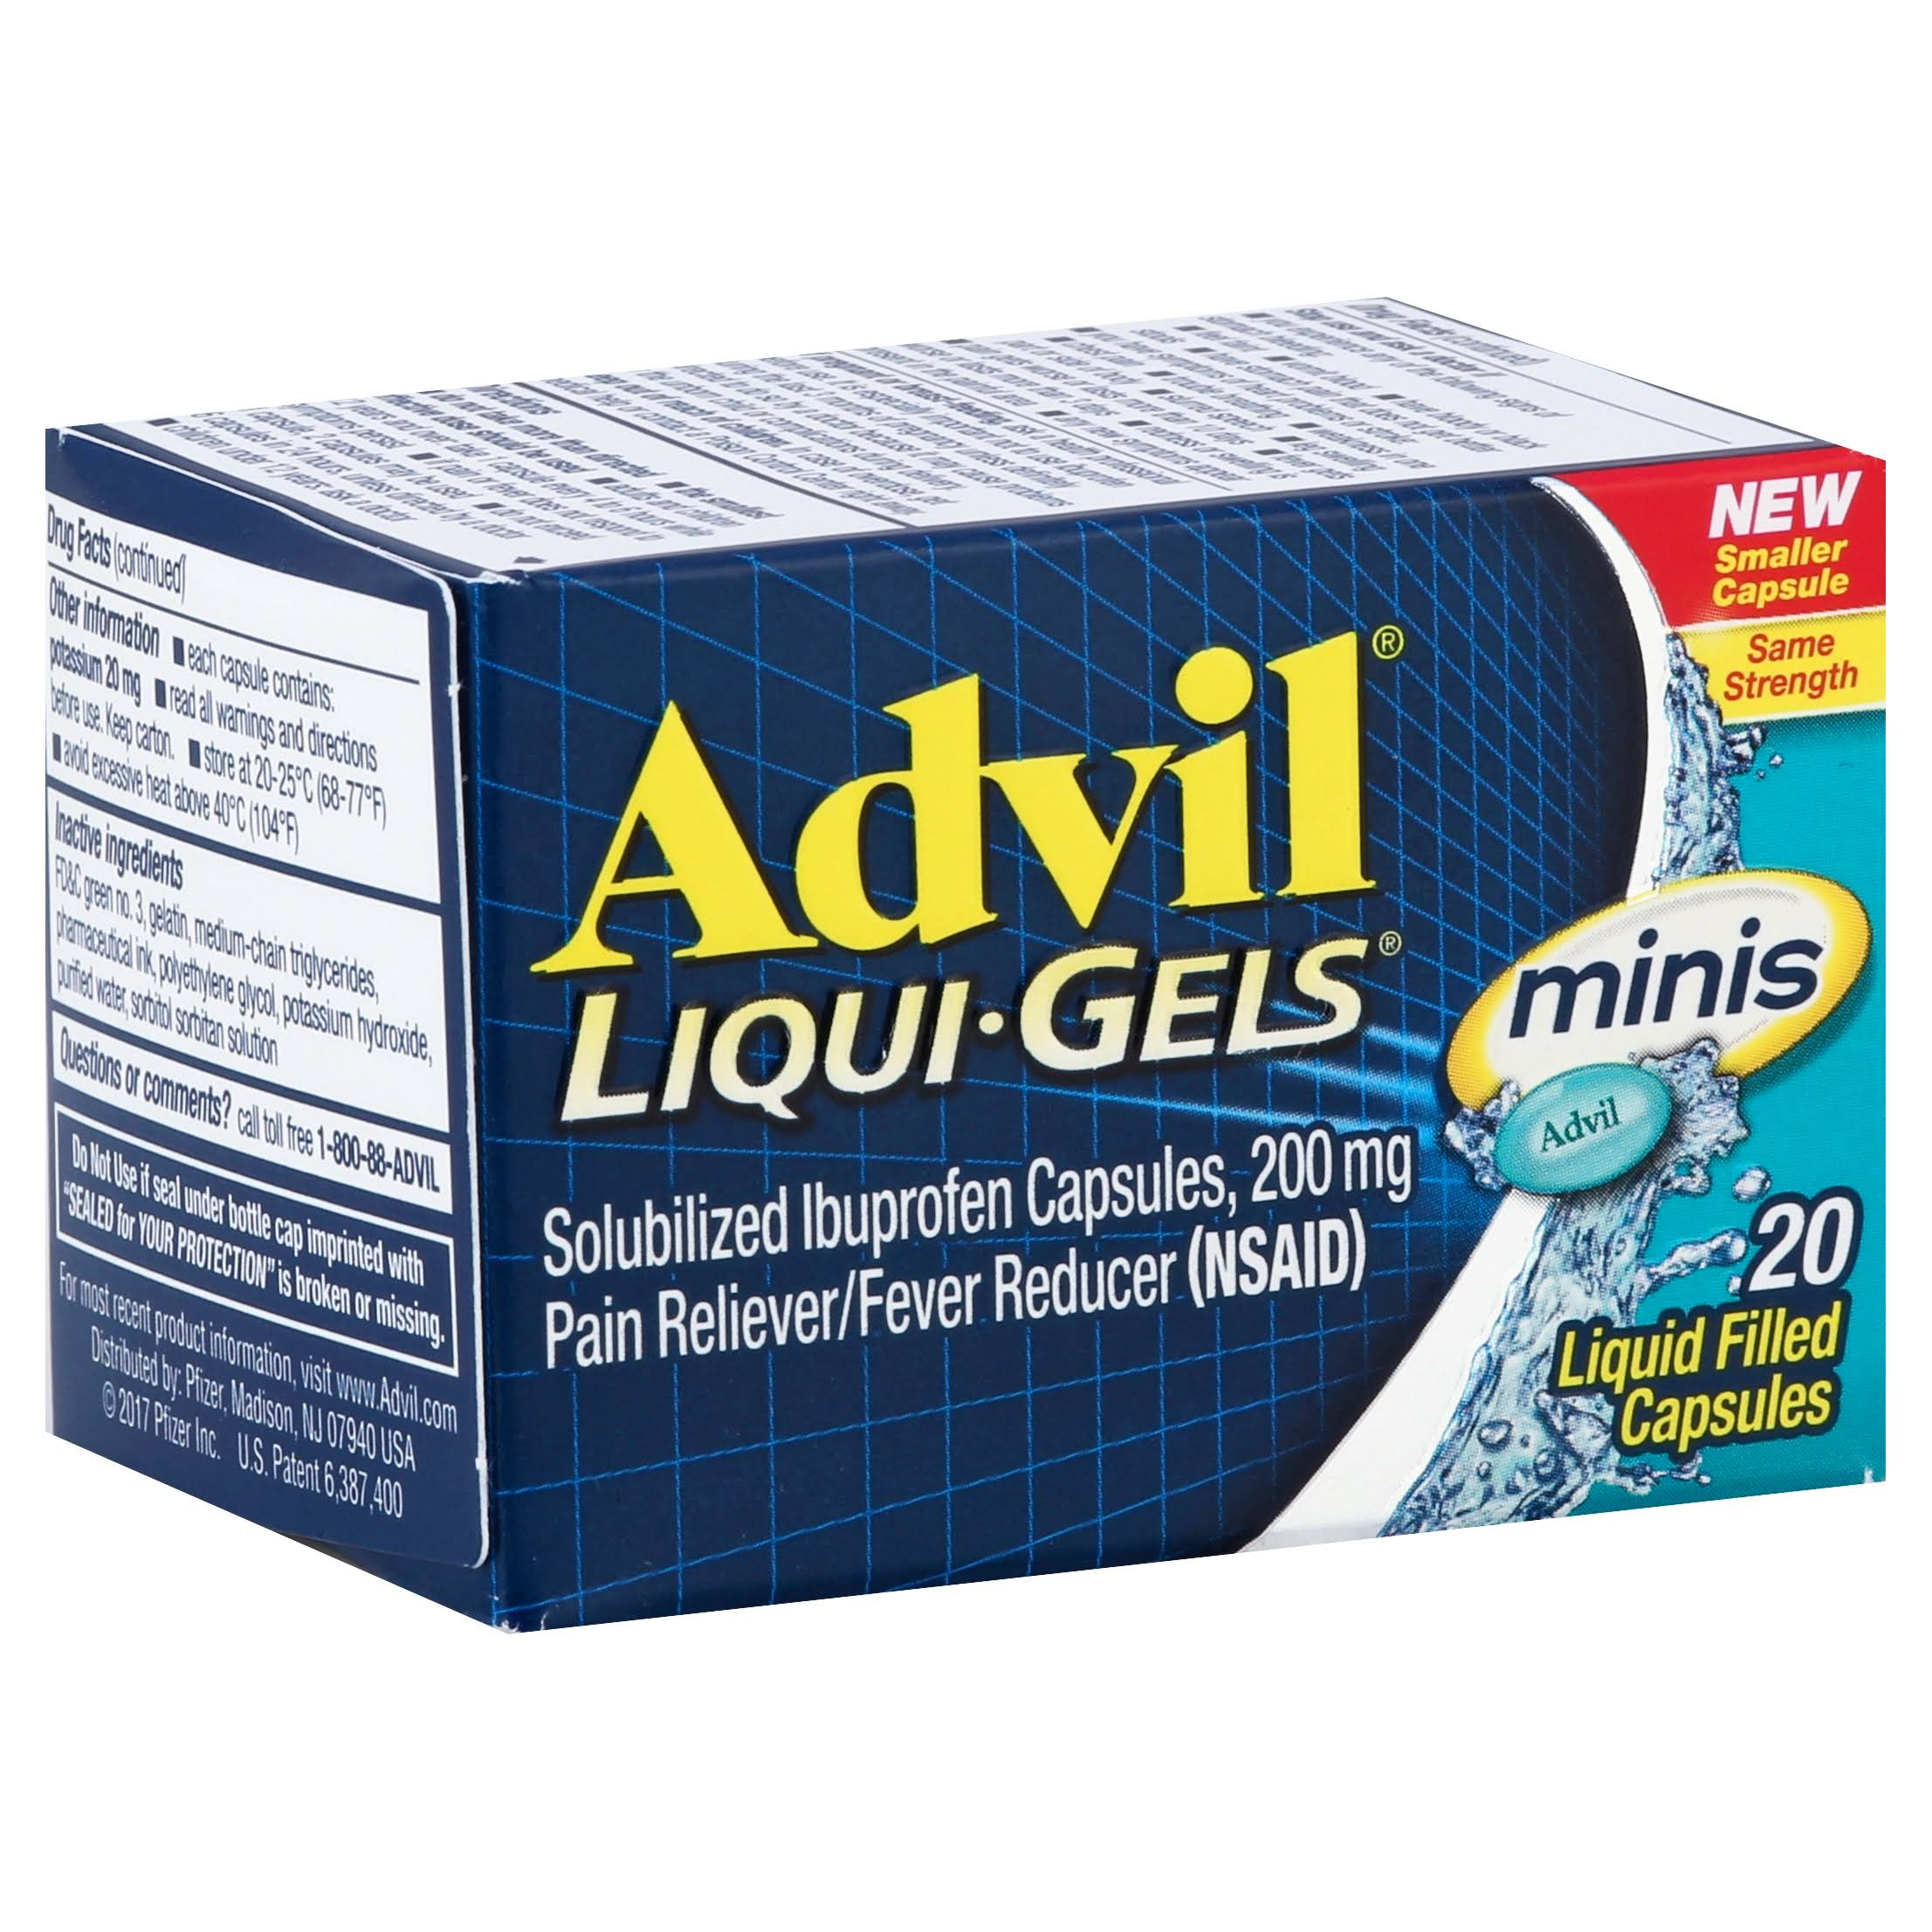 Advil Liqui-Gels Minis Pain Reliever - 20ct